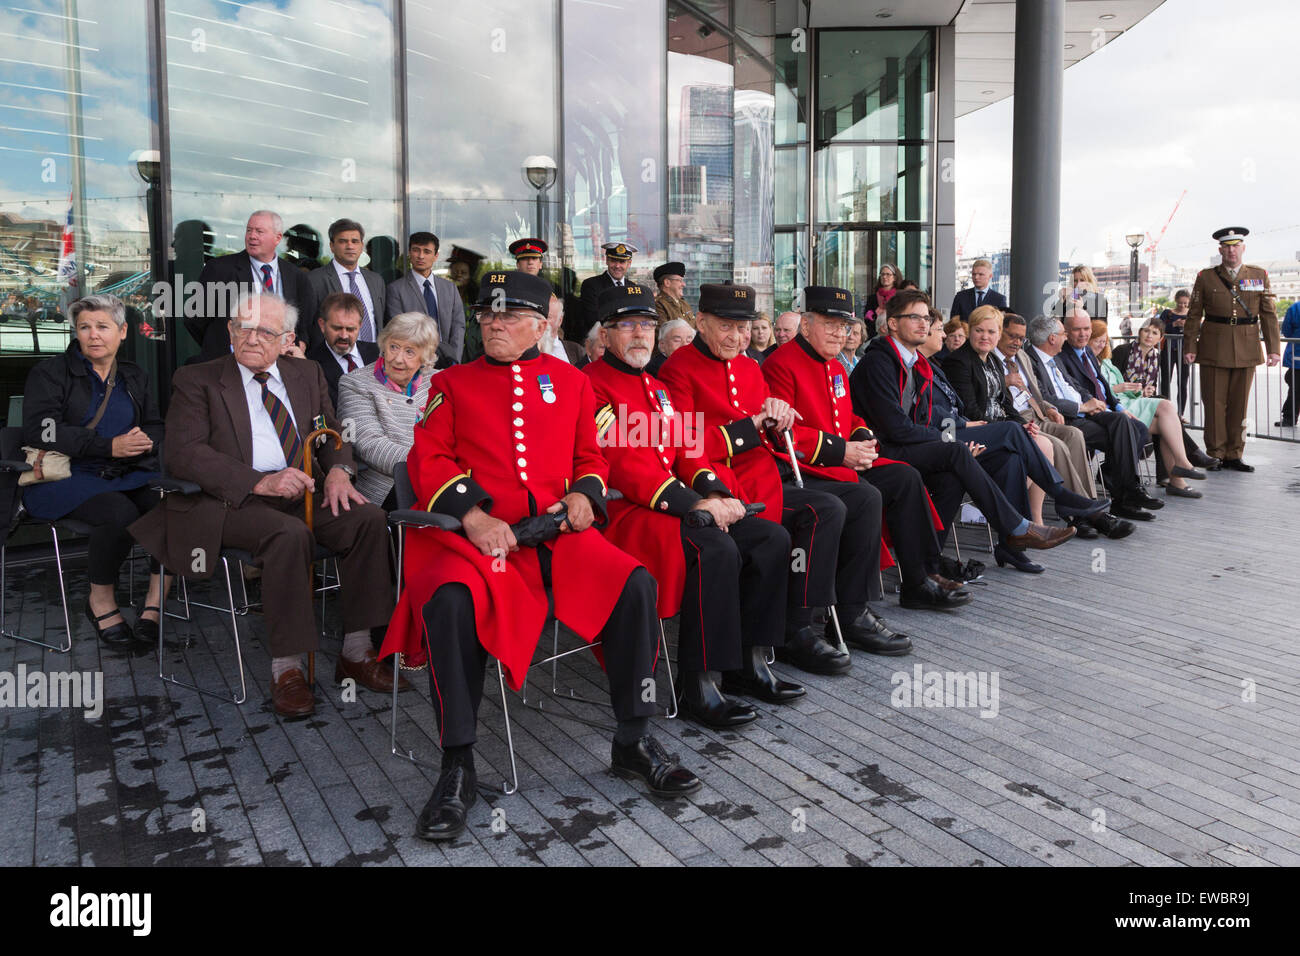 London, UK. 22 June 2015. Four Chelsea Pensioners joined other guests at the event. Boris Johnson, the Mayor of - Stock Image